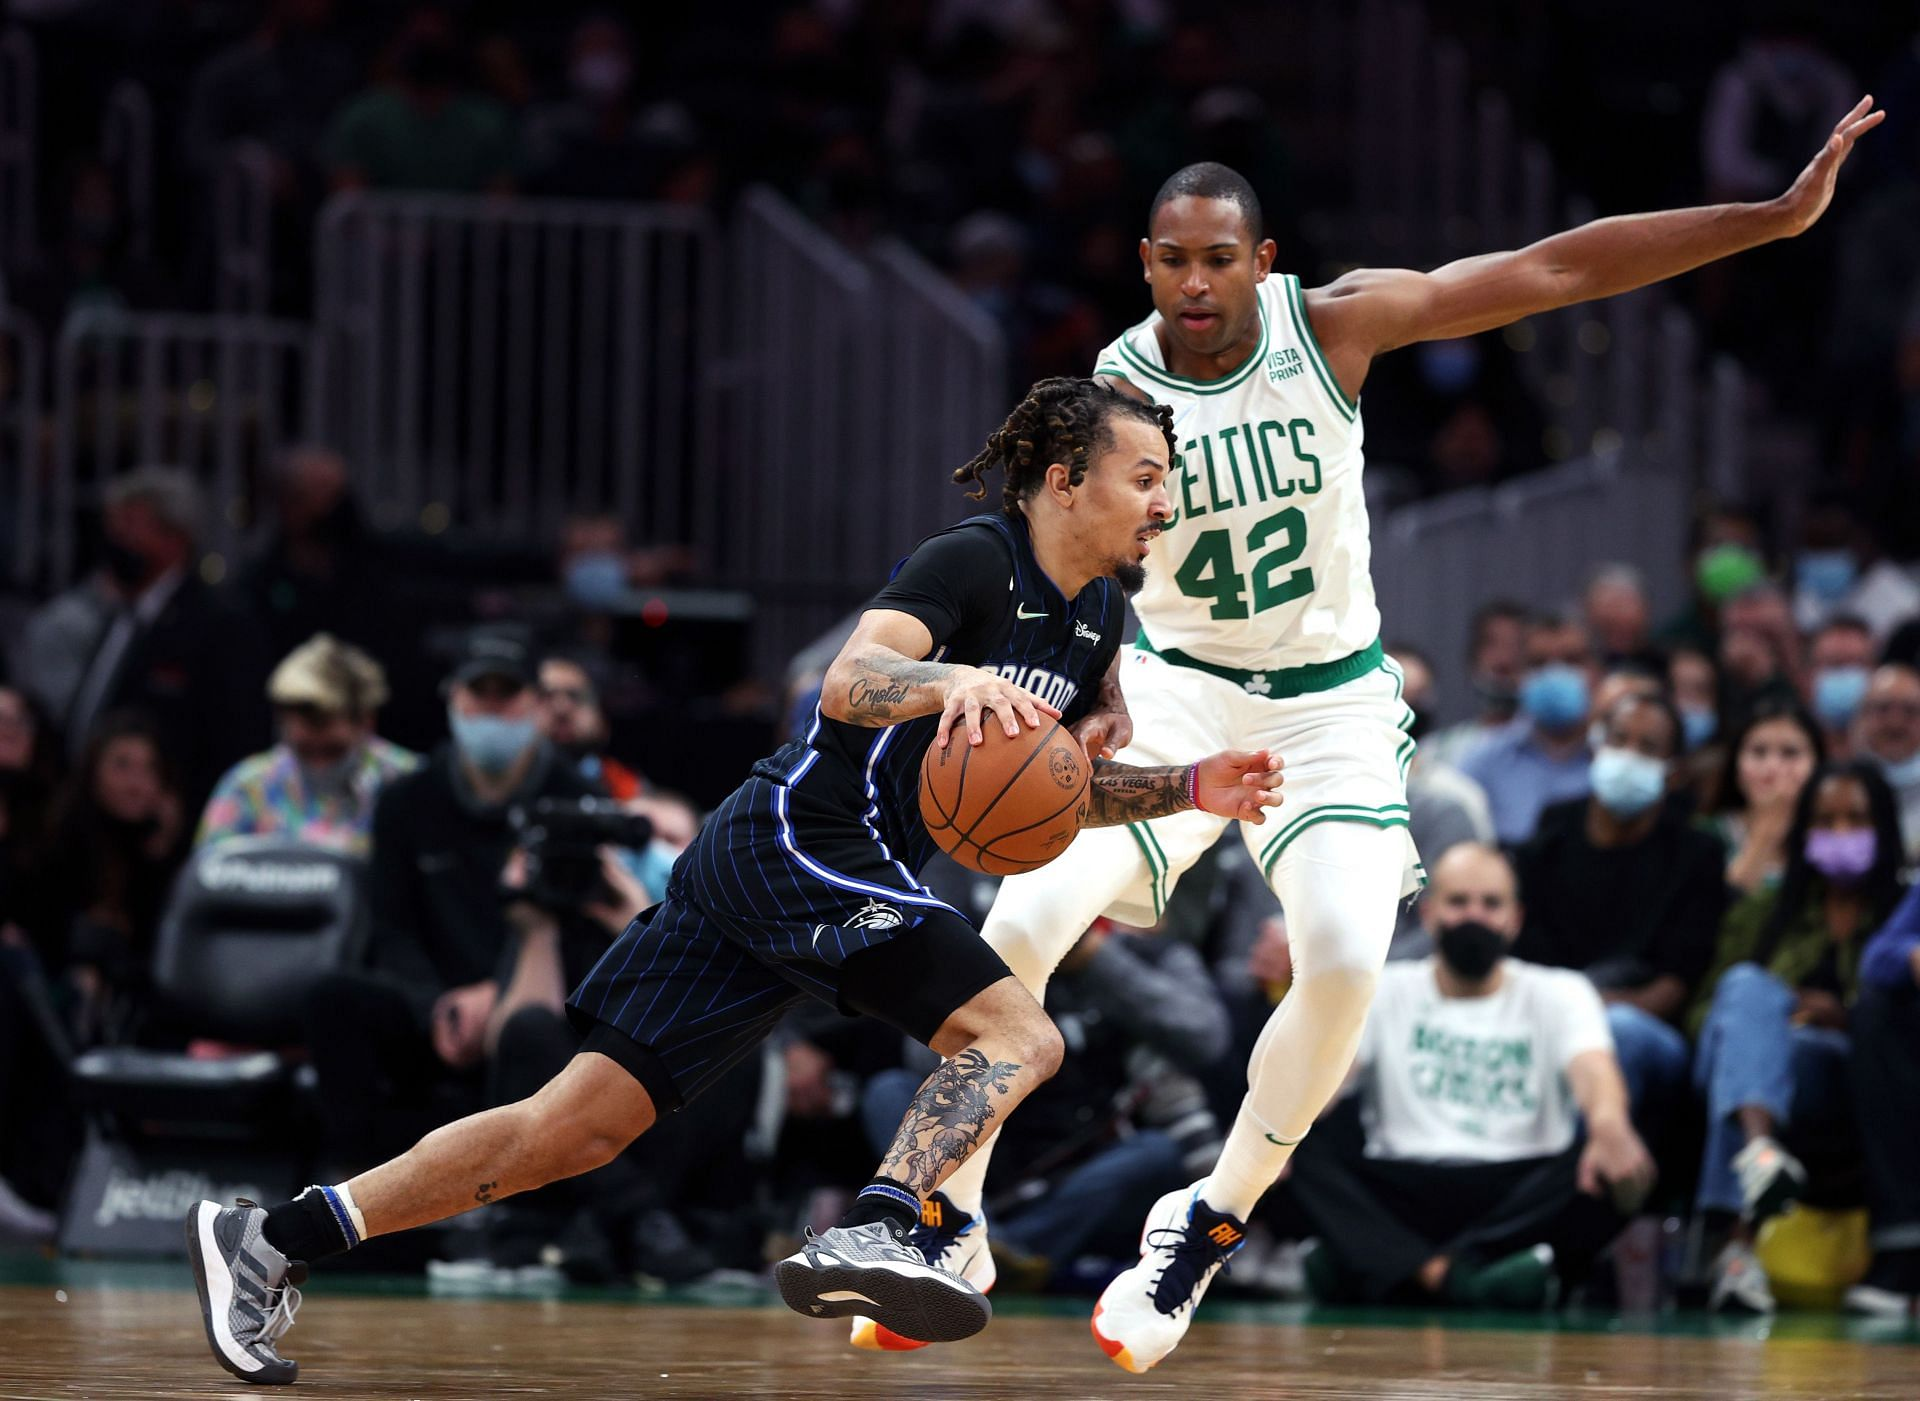 Al Horford of the Boston Celtics (#42) in action against the Orlando Magic